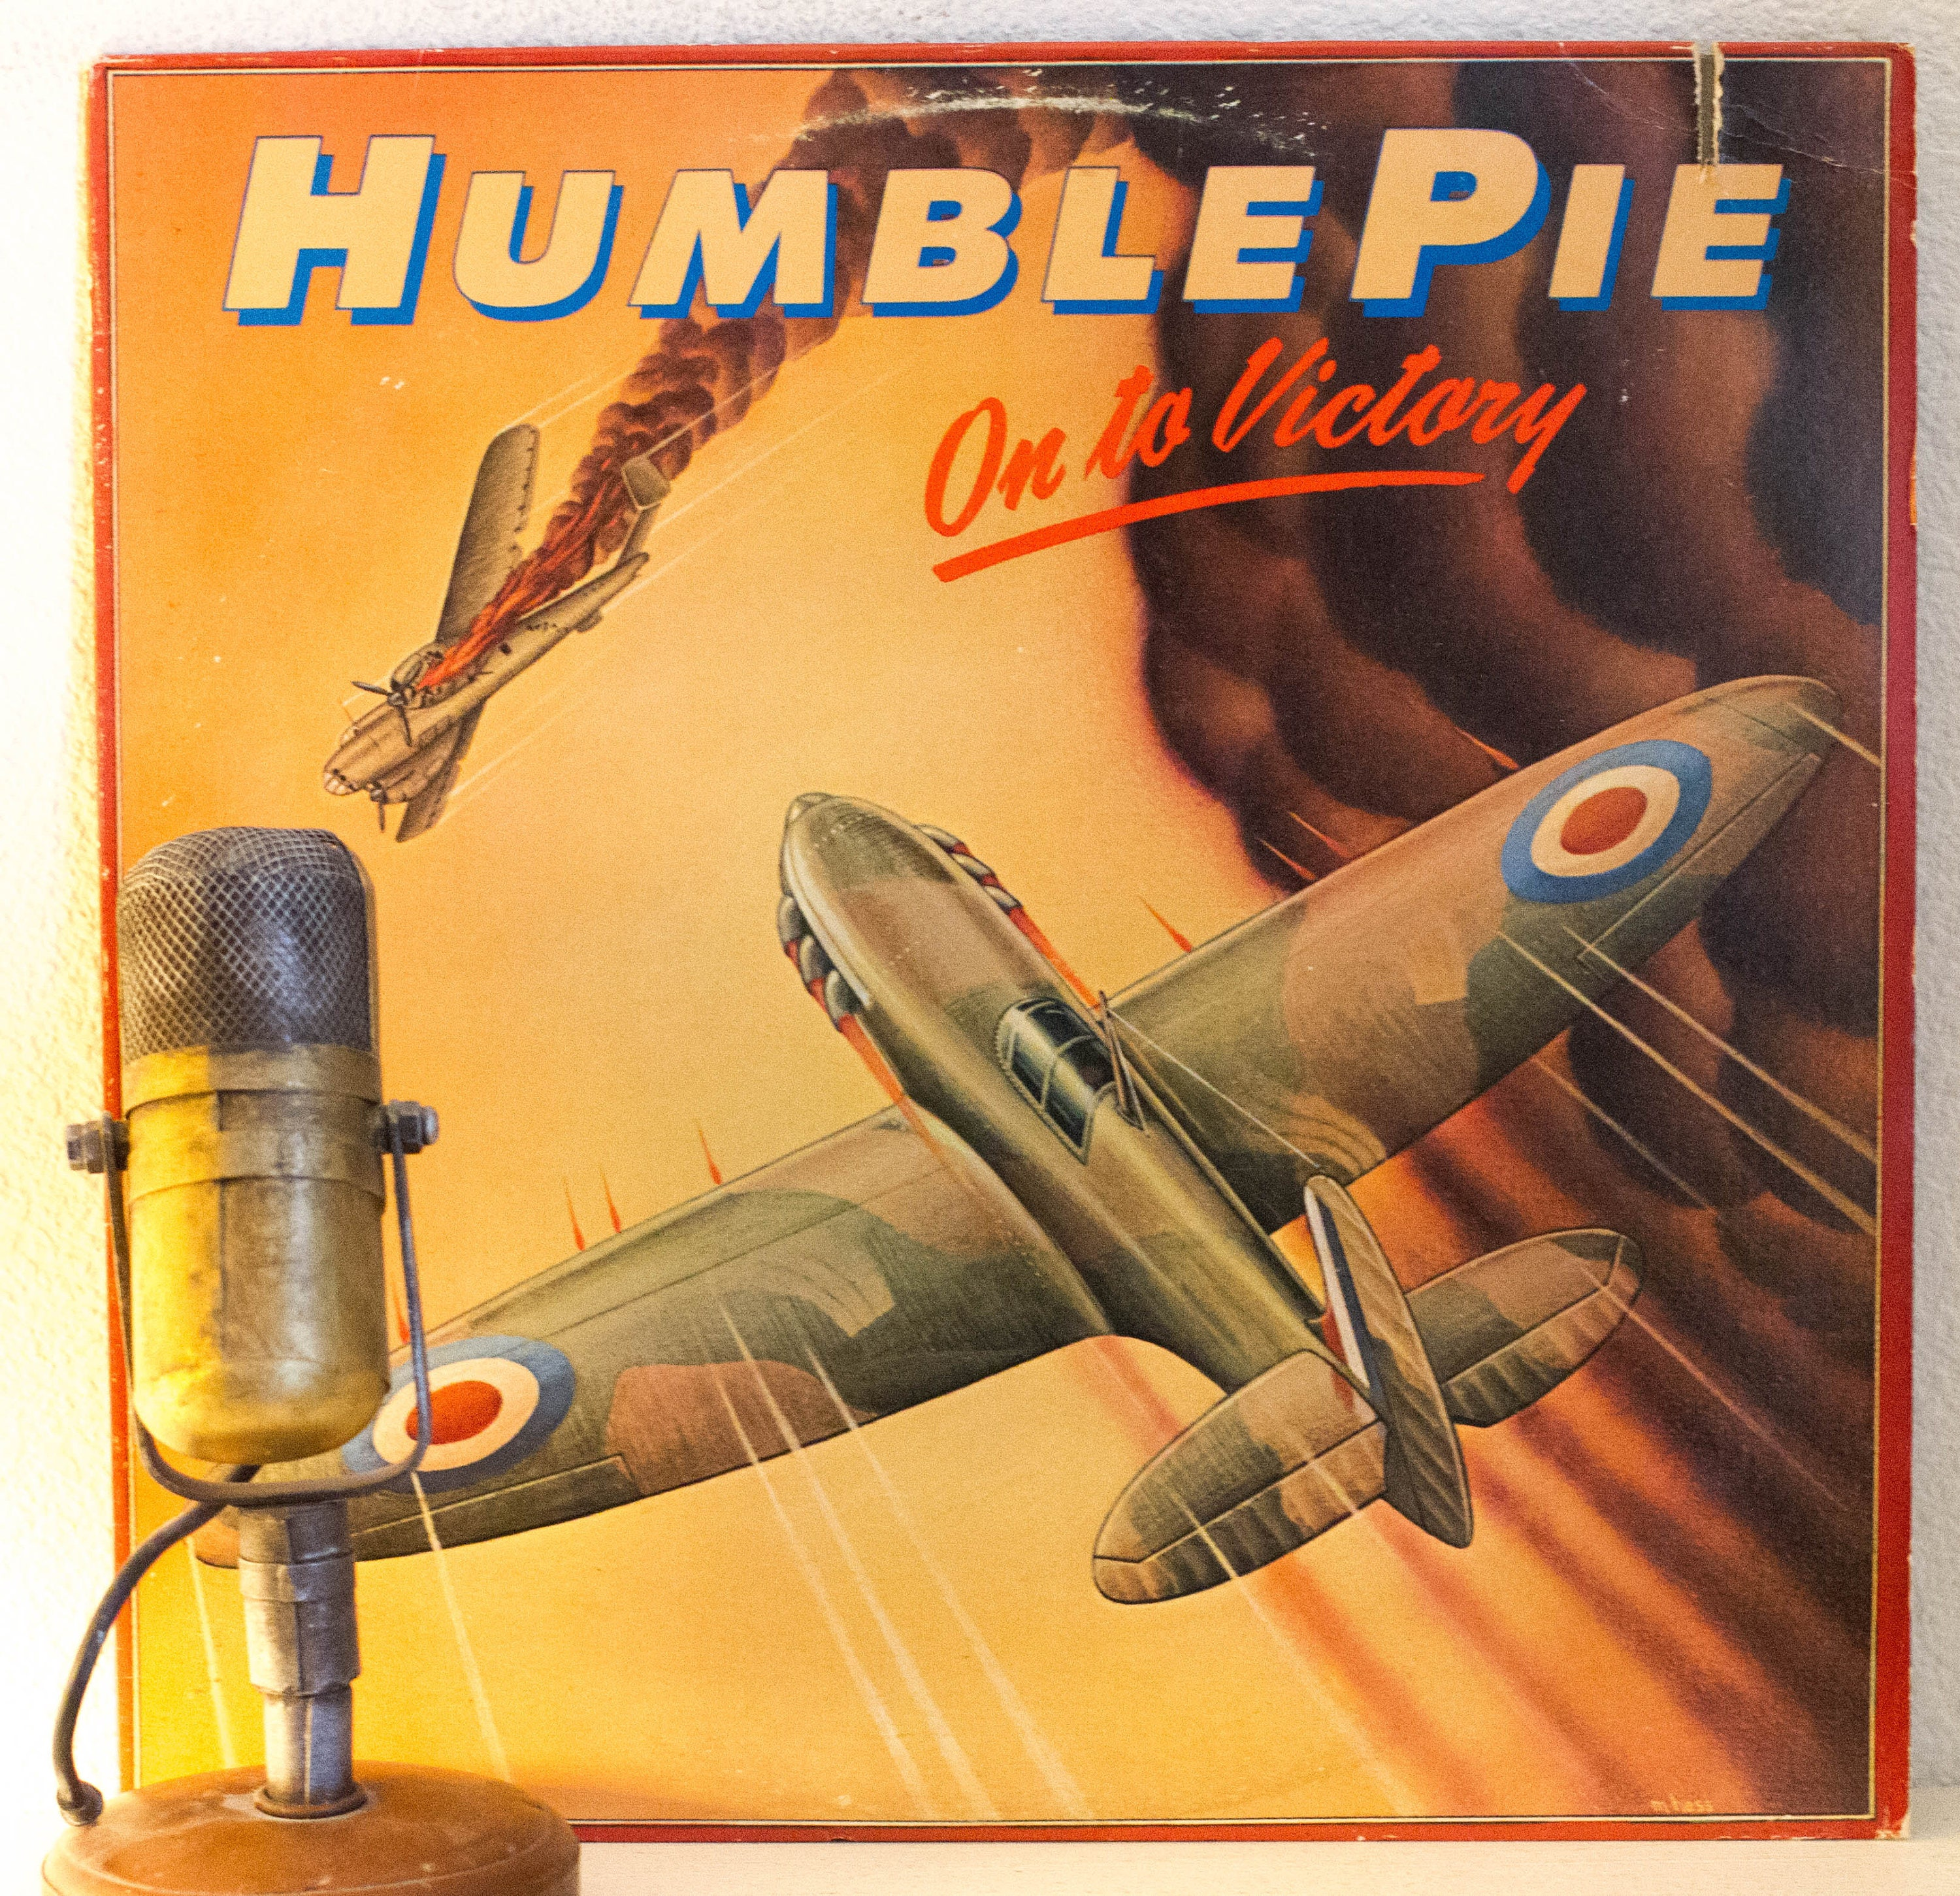 Humble Pie With Steve Marriott Vinyl Record Lp 1980s British Etsy The Life And Times Of Dvd Zoom